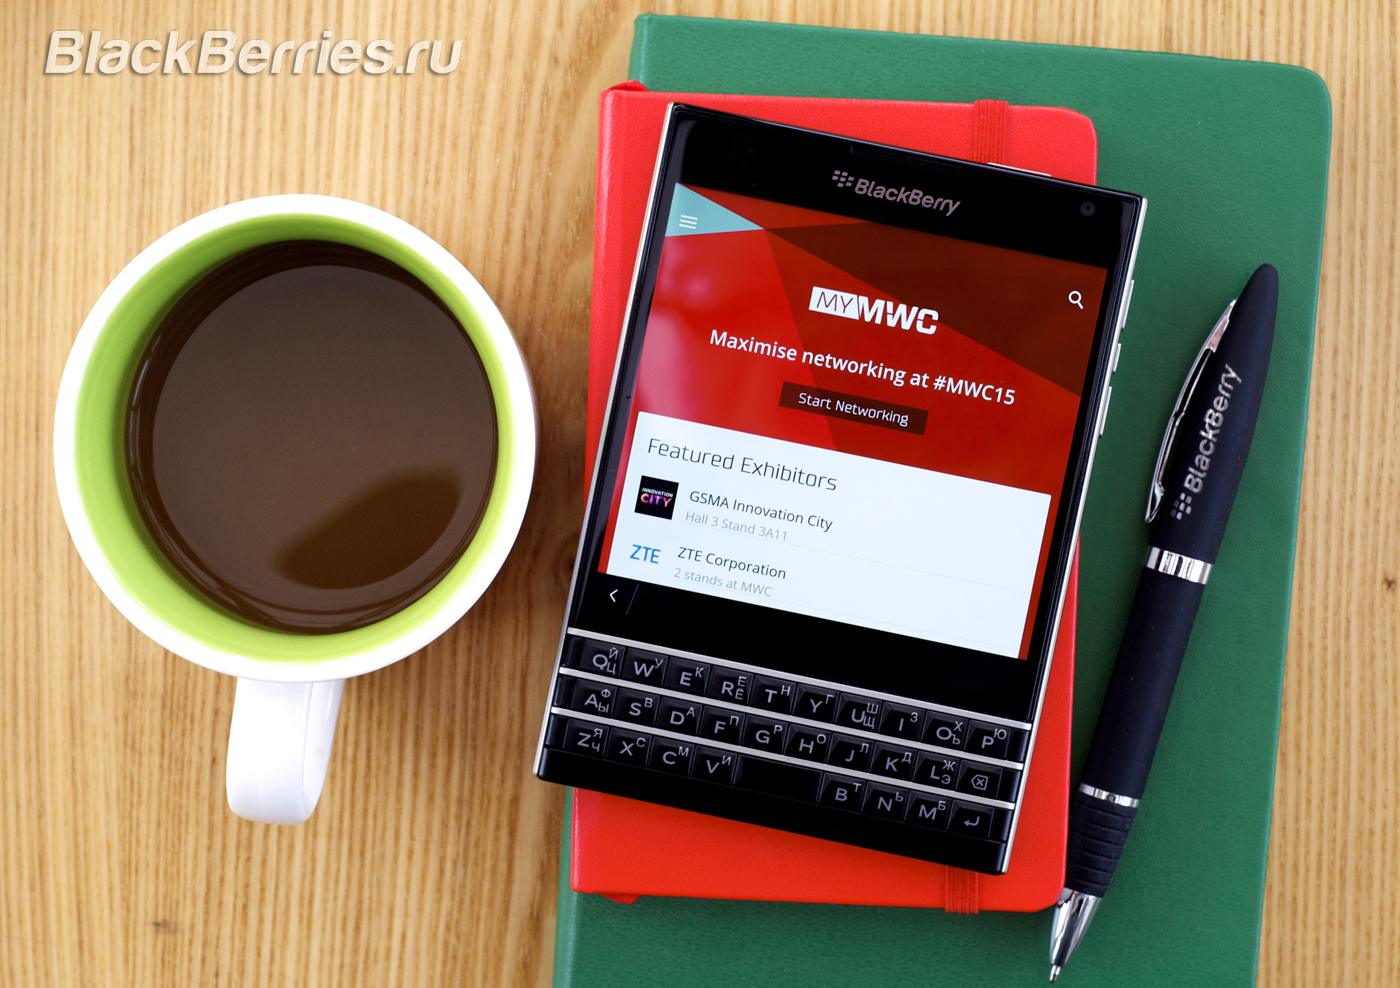 BlackBerry-Passport-MWC2015